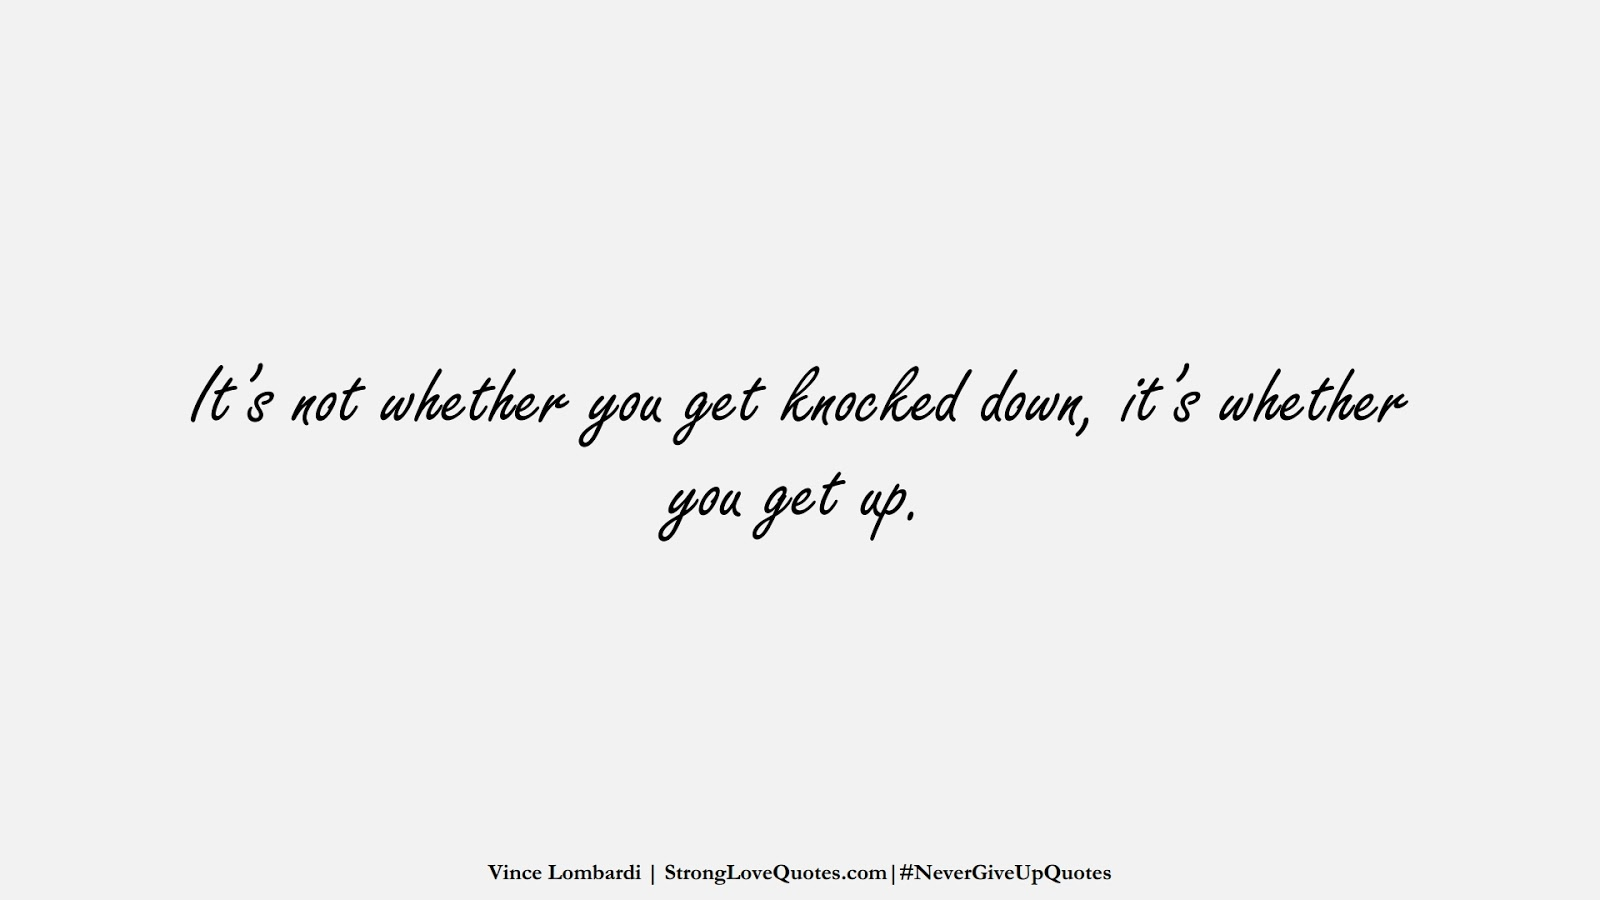 It's not whether you get knocked down, it's whether you get up. (Vince Lombardi);  #NeverGiveUpQuotes